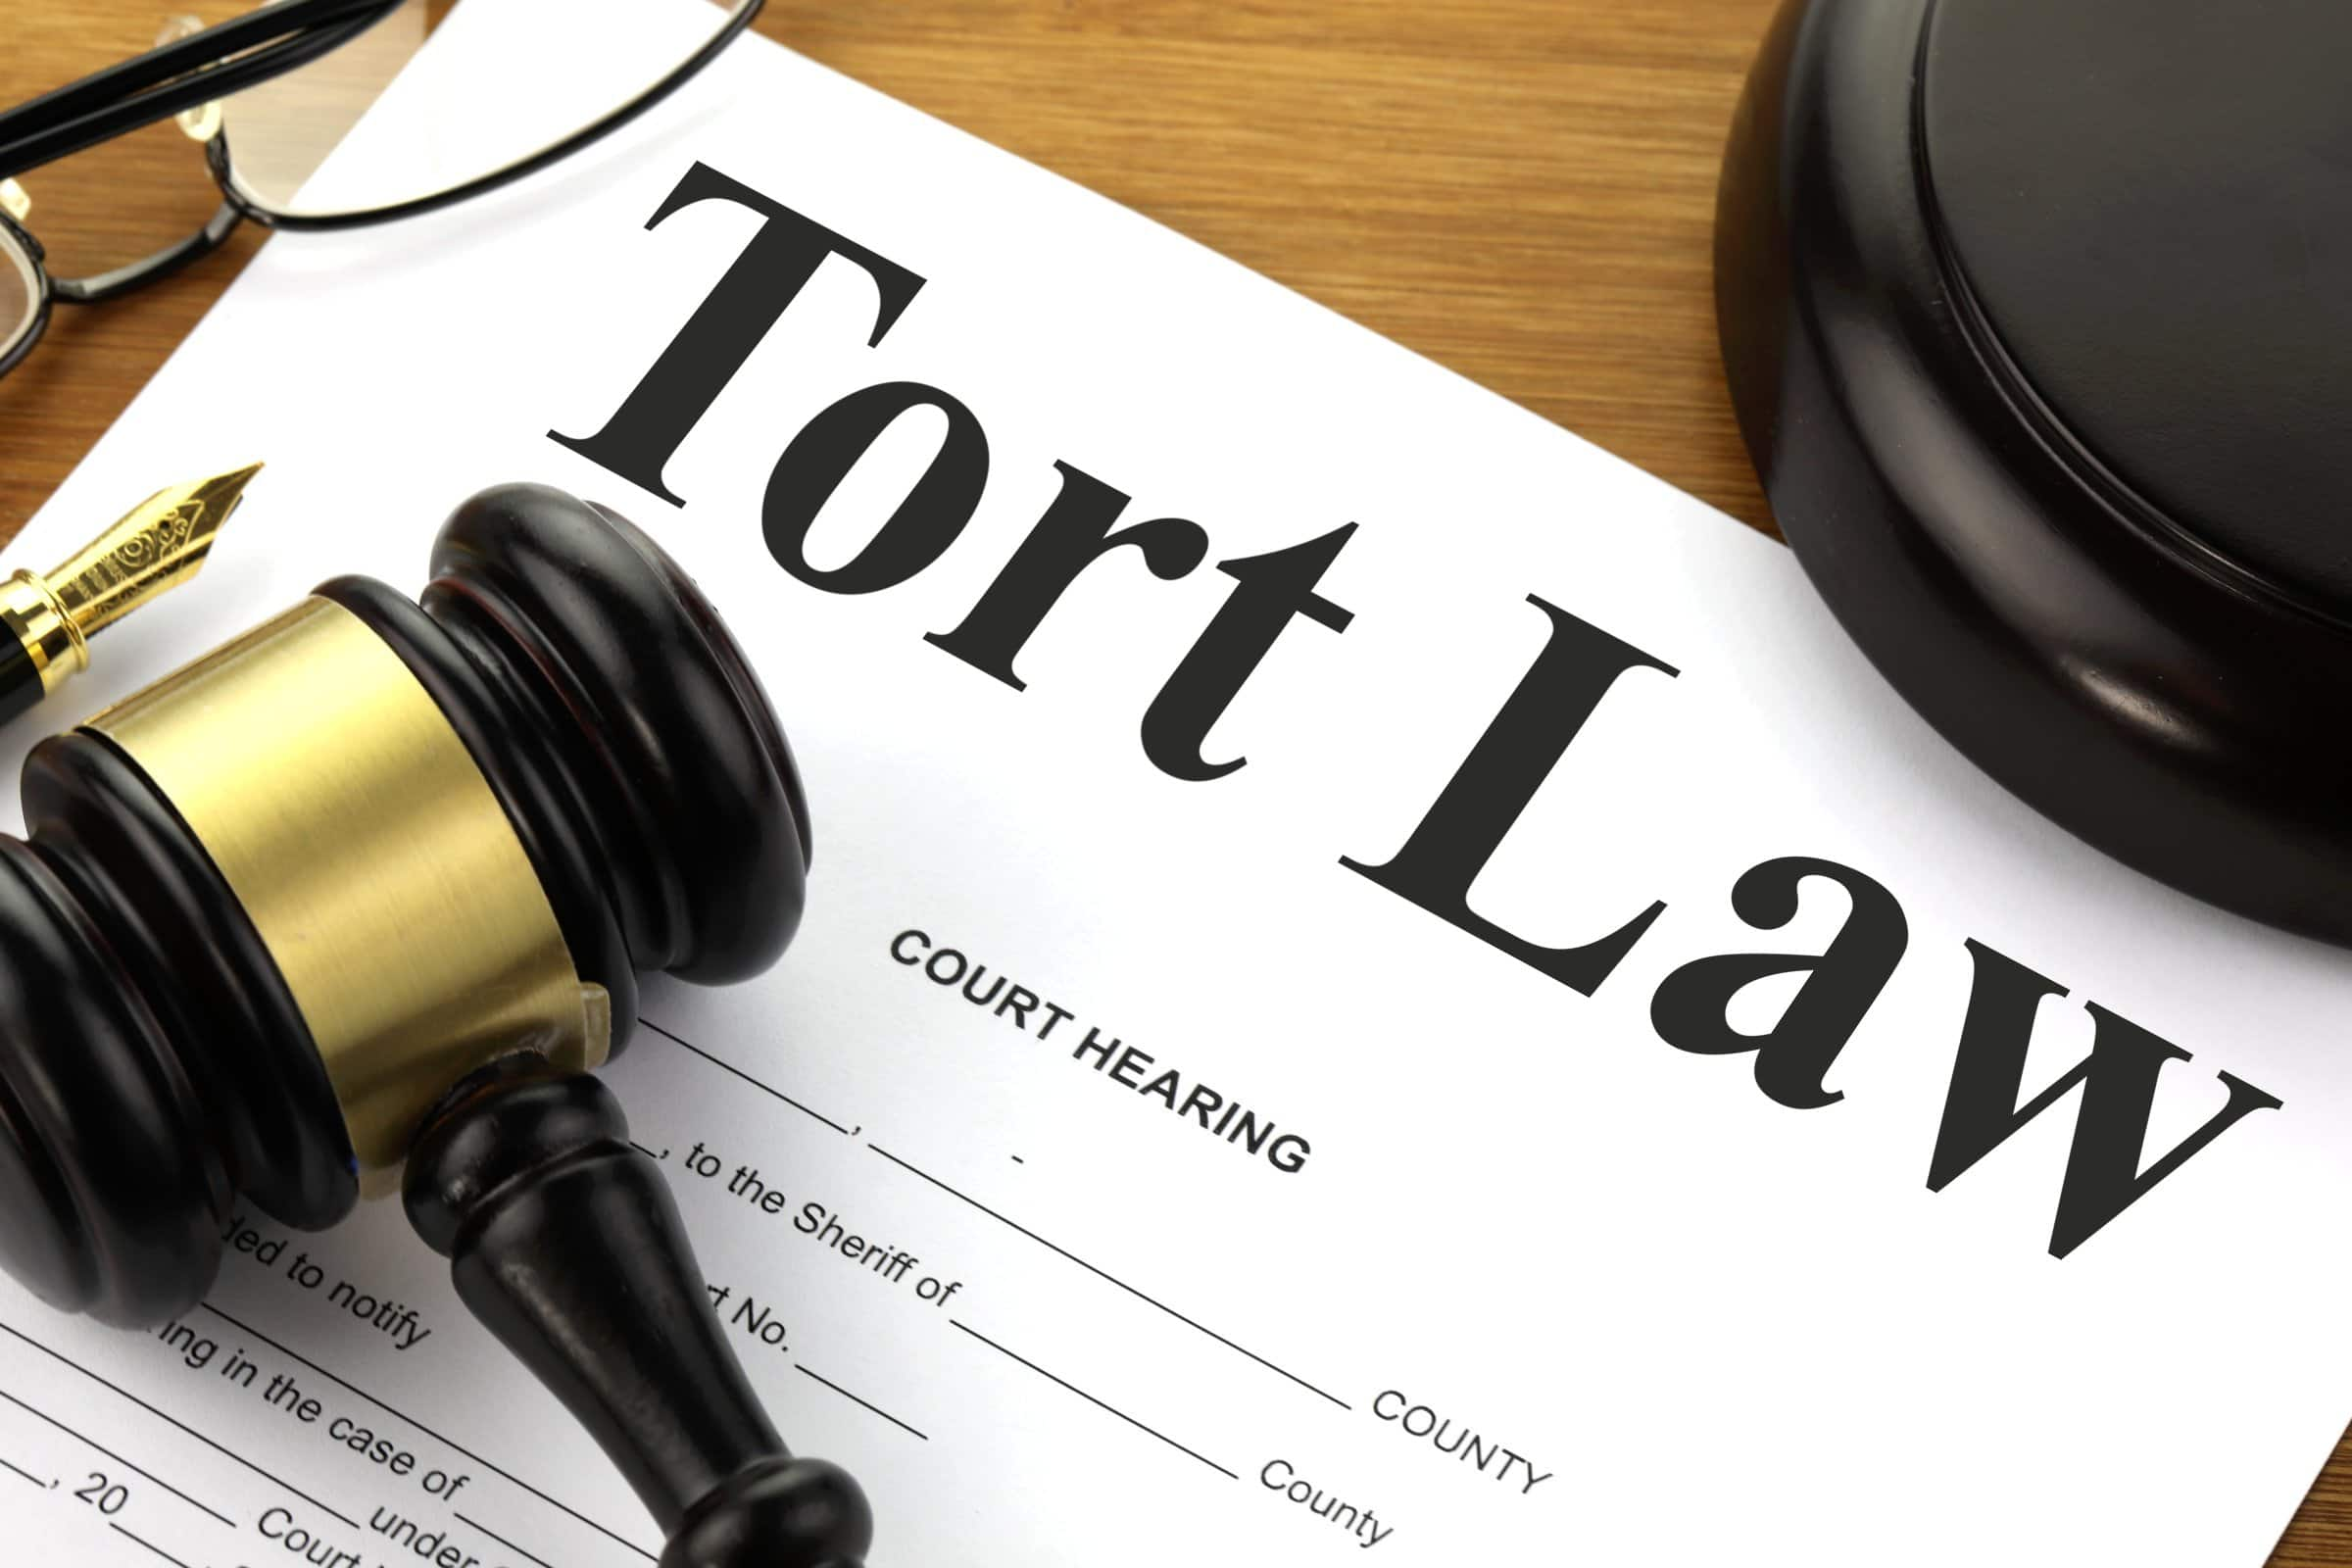 filing a claim under tort law